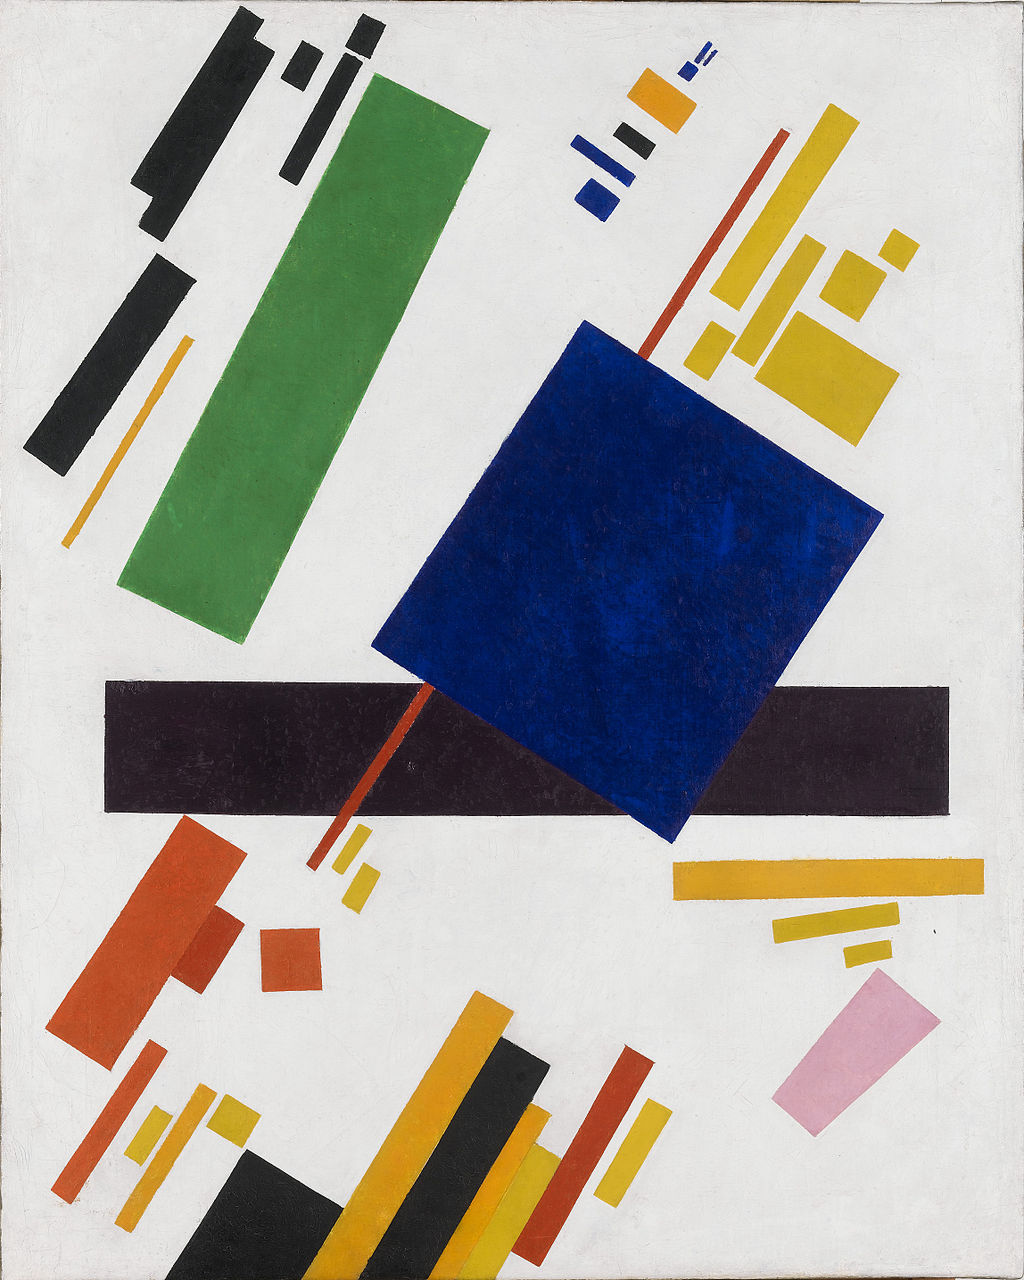 art by Malevich